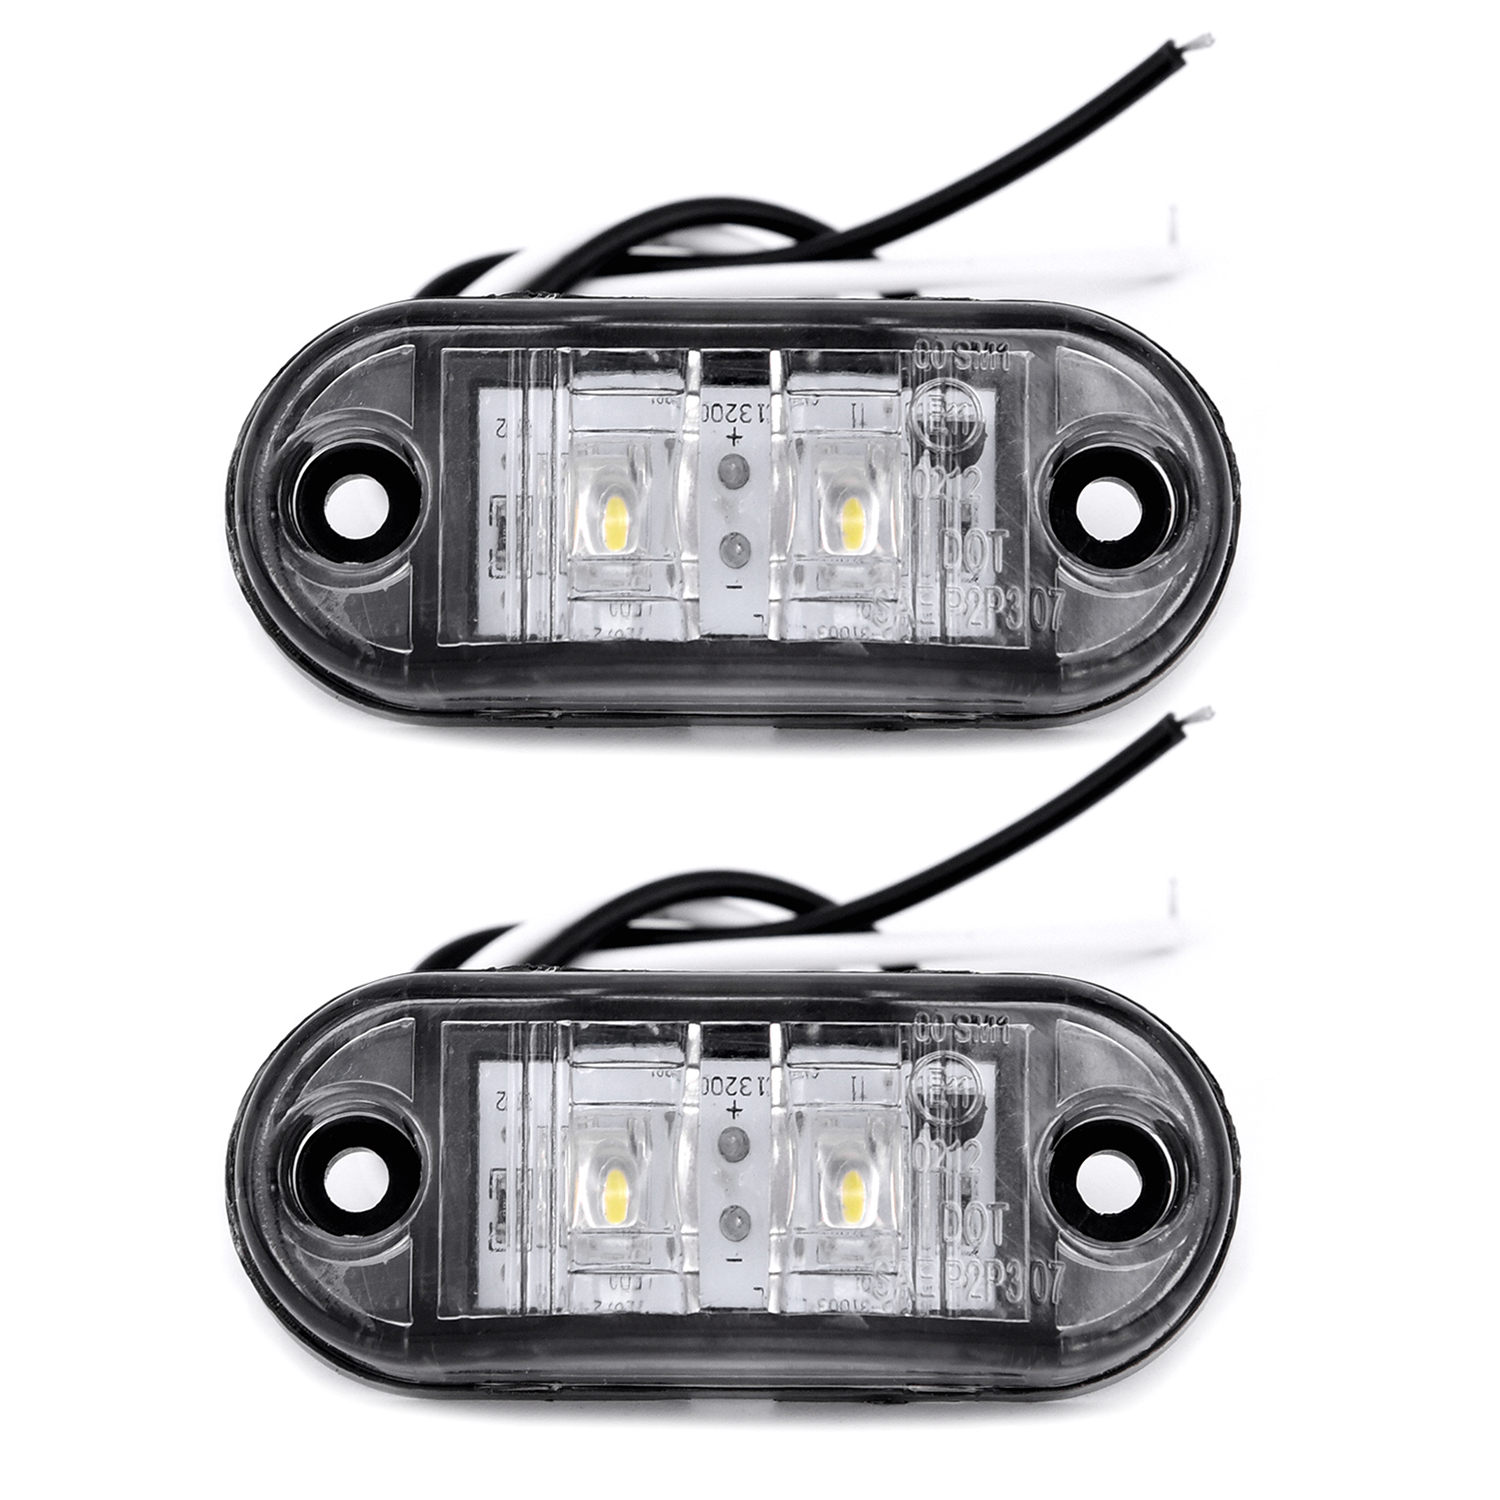 2pcs DC 10-30V 0.5W White E11 Bulb Waterproof IP65 Piranha Trailer Car Truck White LED Side Marker Lights Lamps